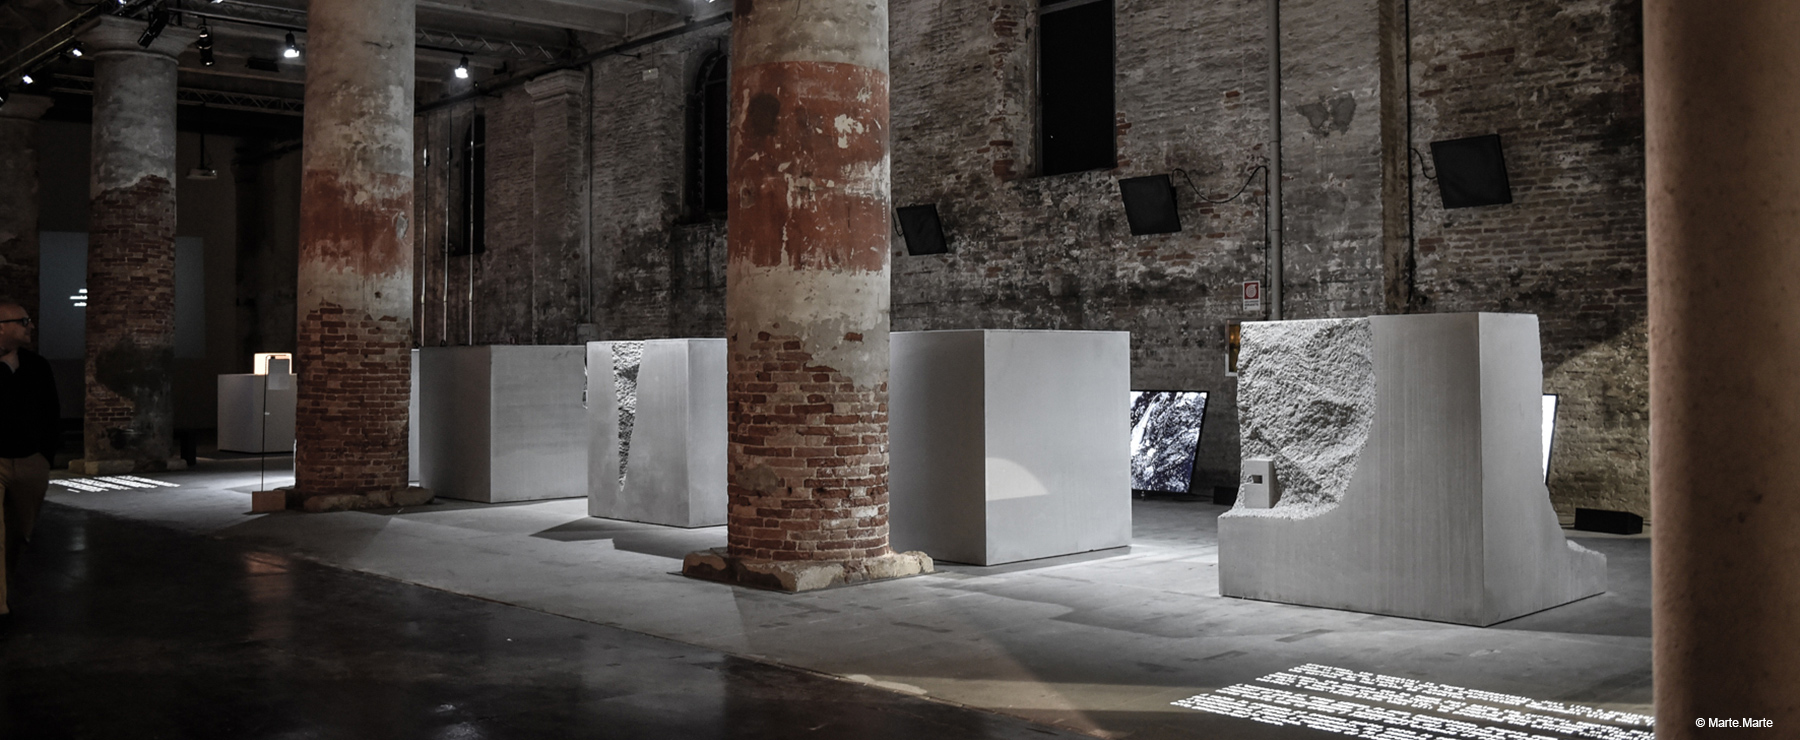 marte-marte-venice-biennale-produced by dade design